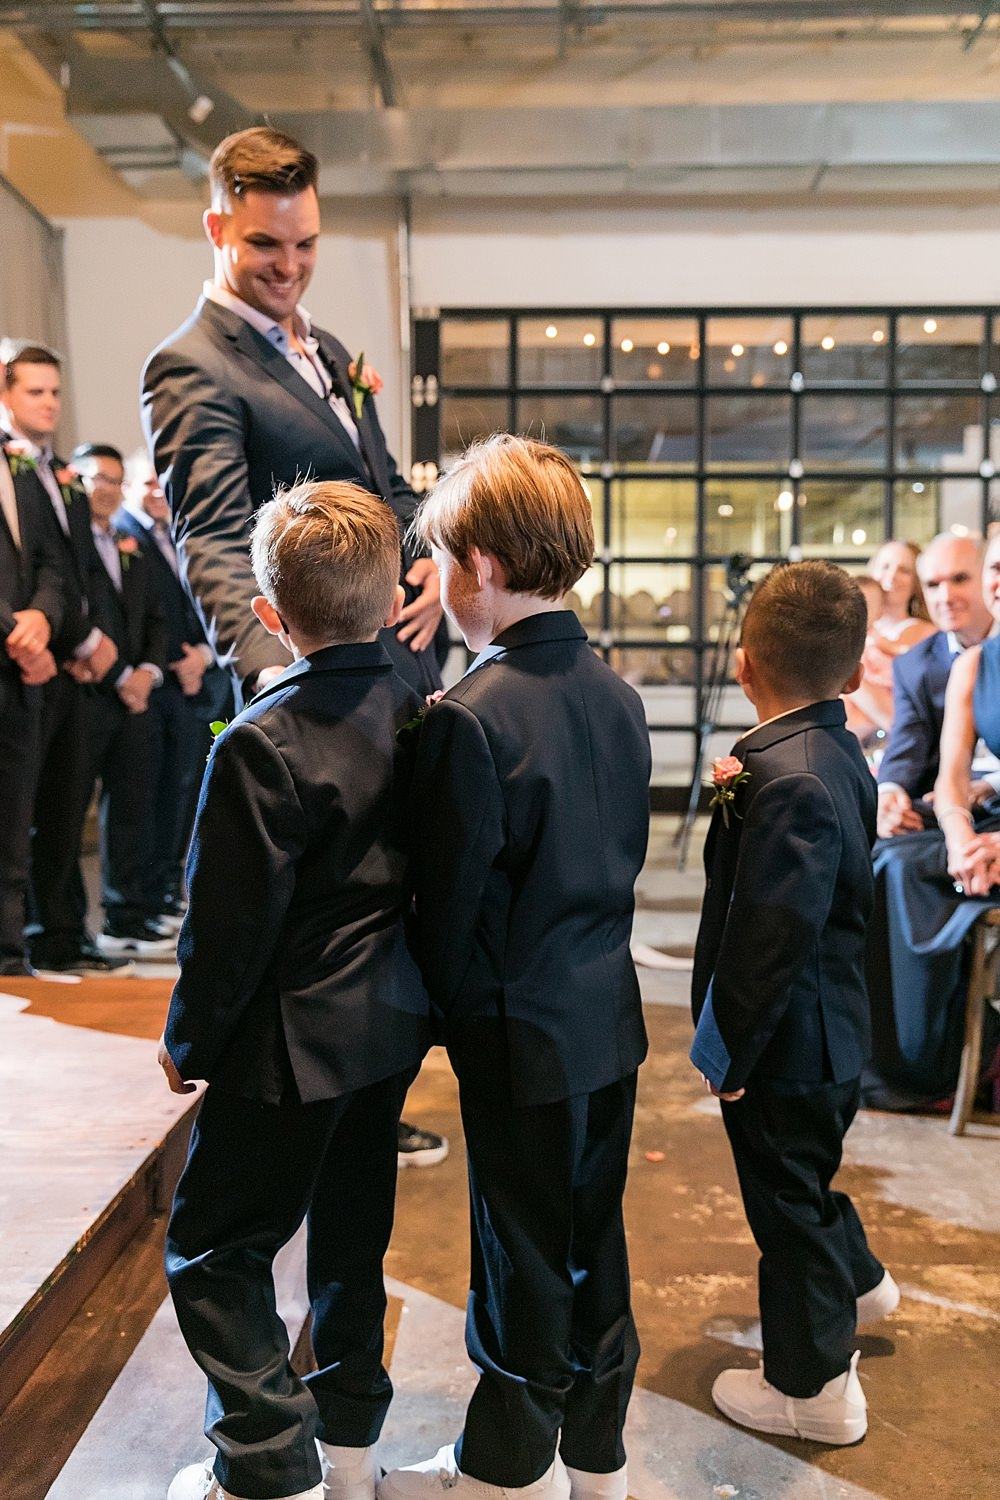 stave room wedding : l events : vue photography 0048